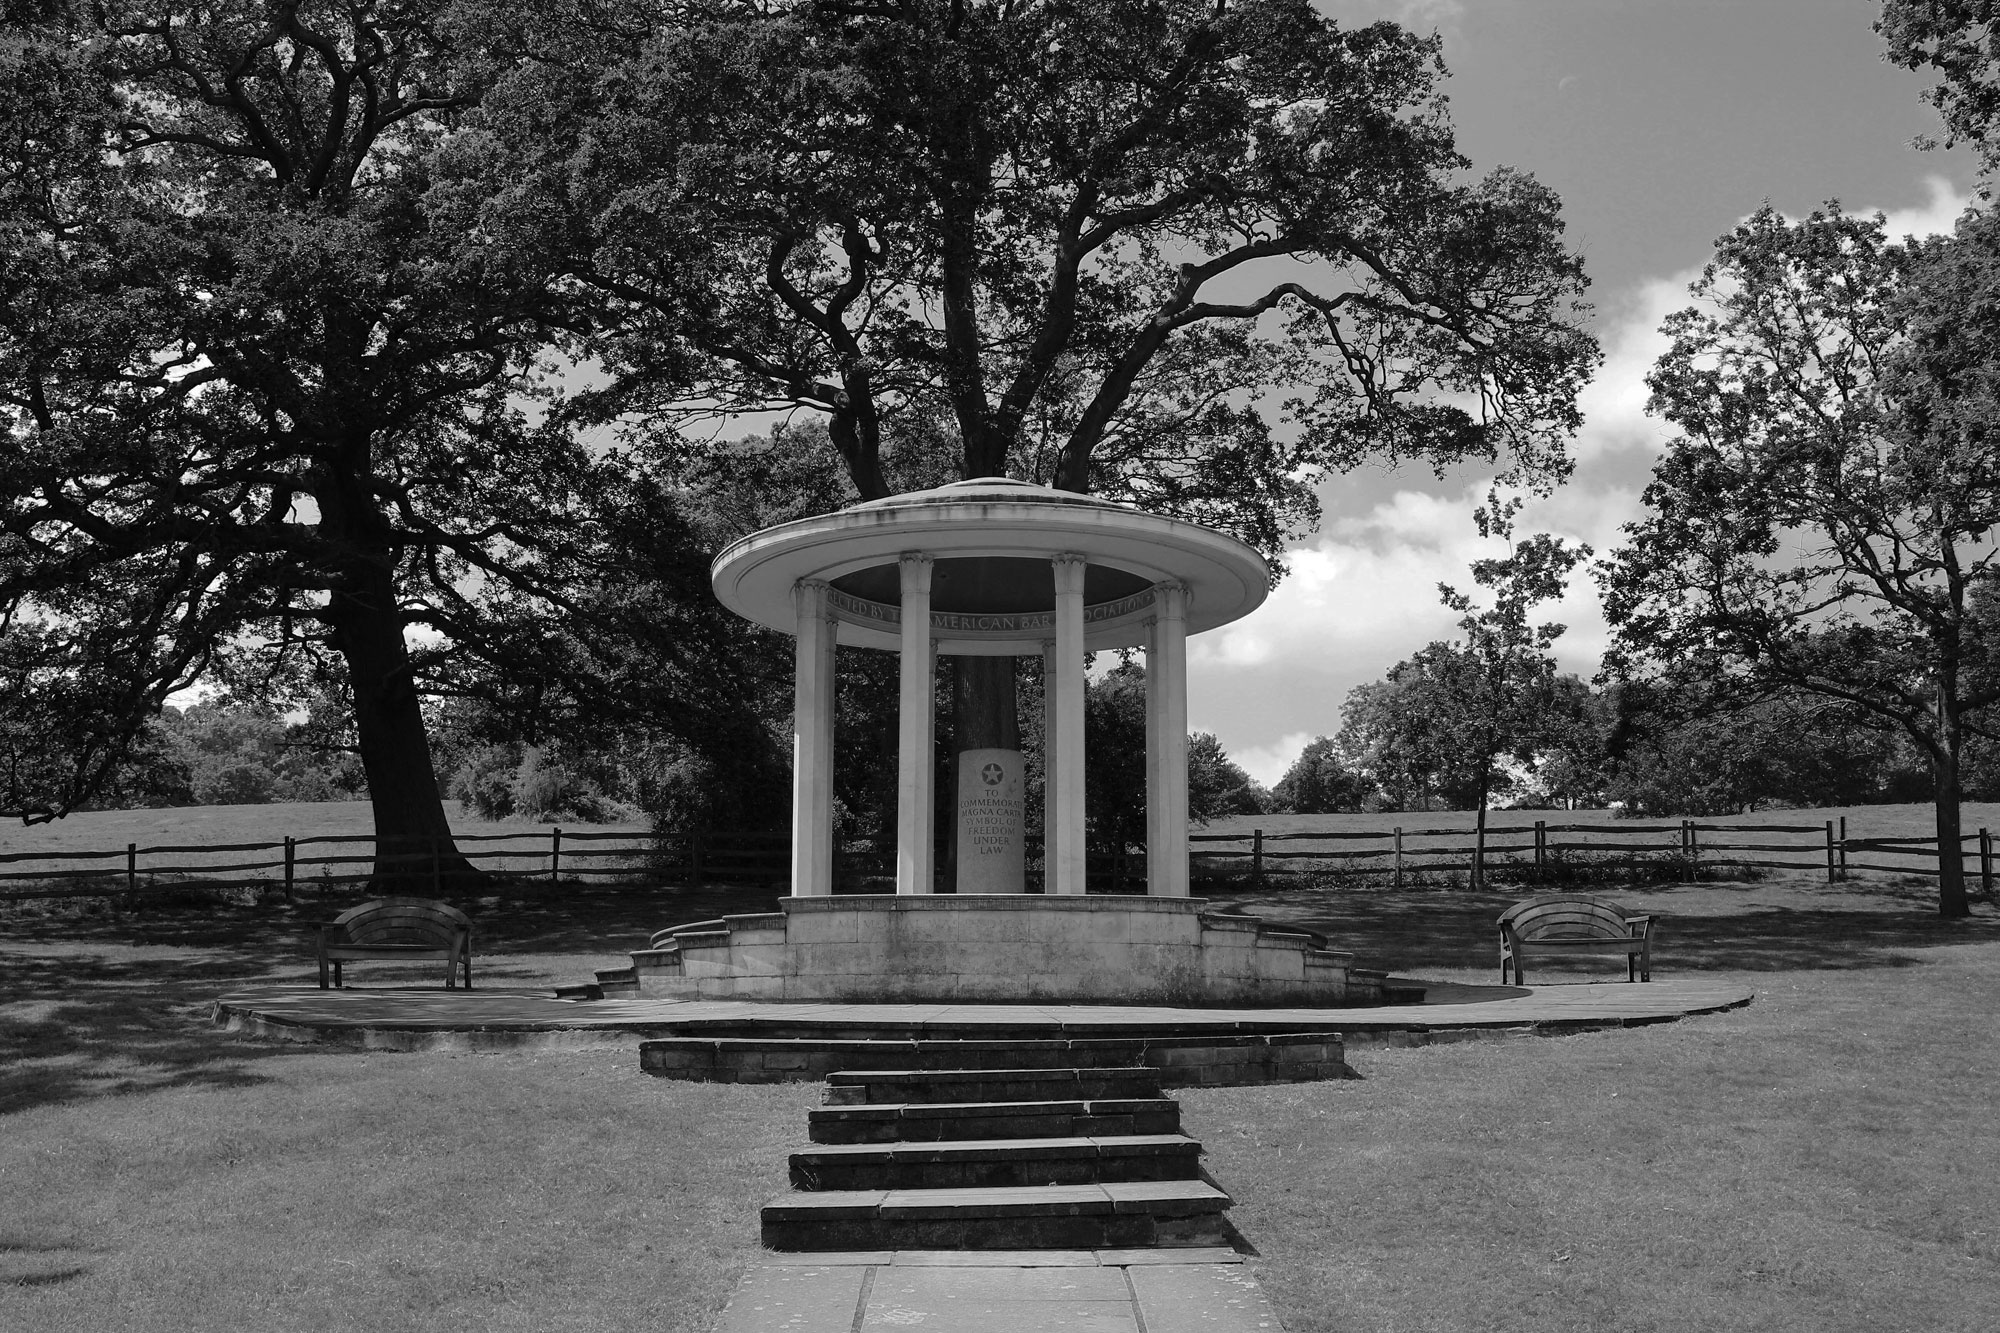 American Bar Association Memorial to Magna Carta, Runnymede. Photograph by Alison Avery.